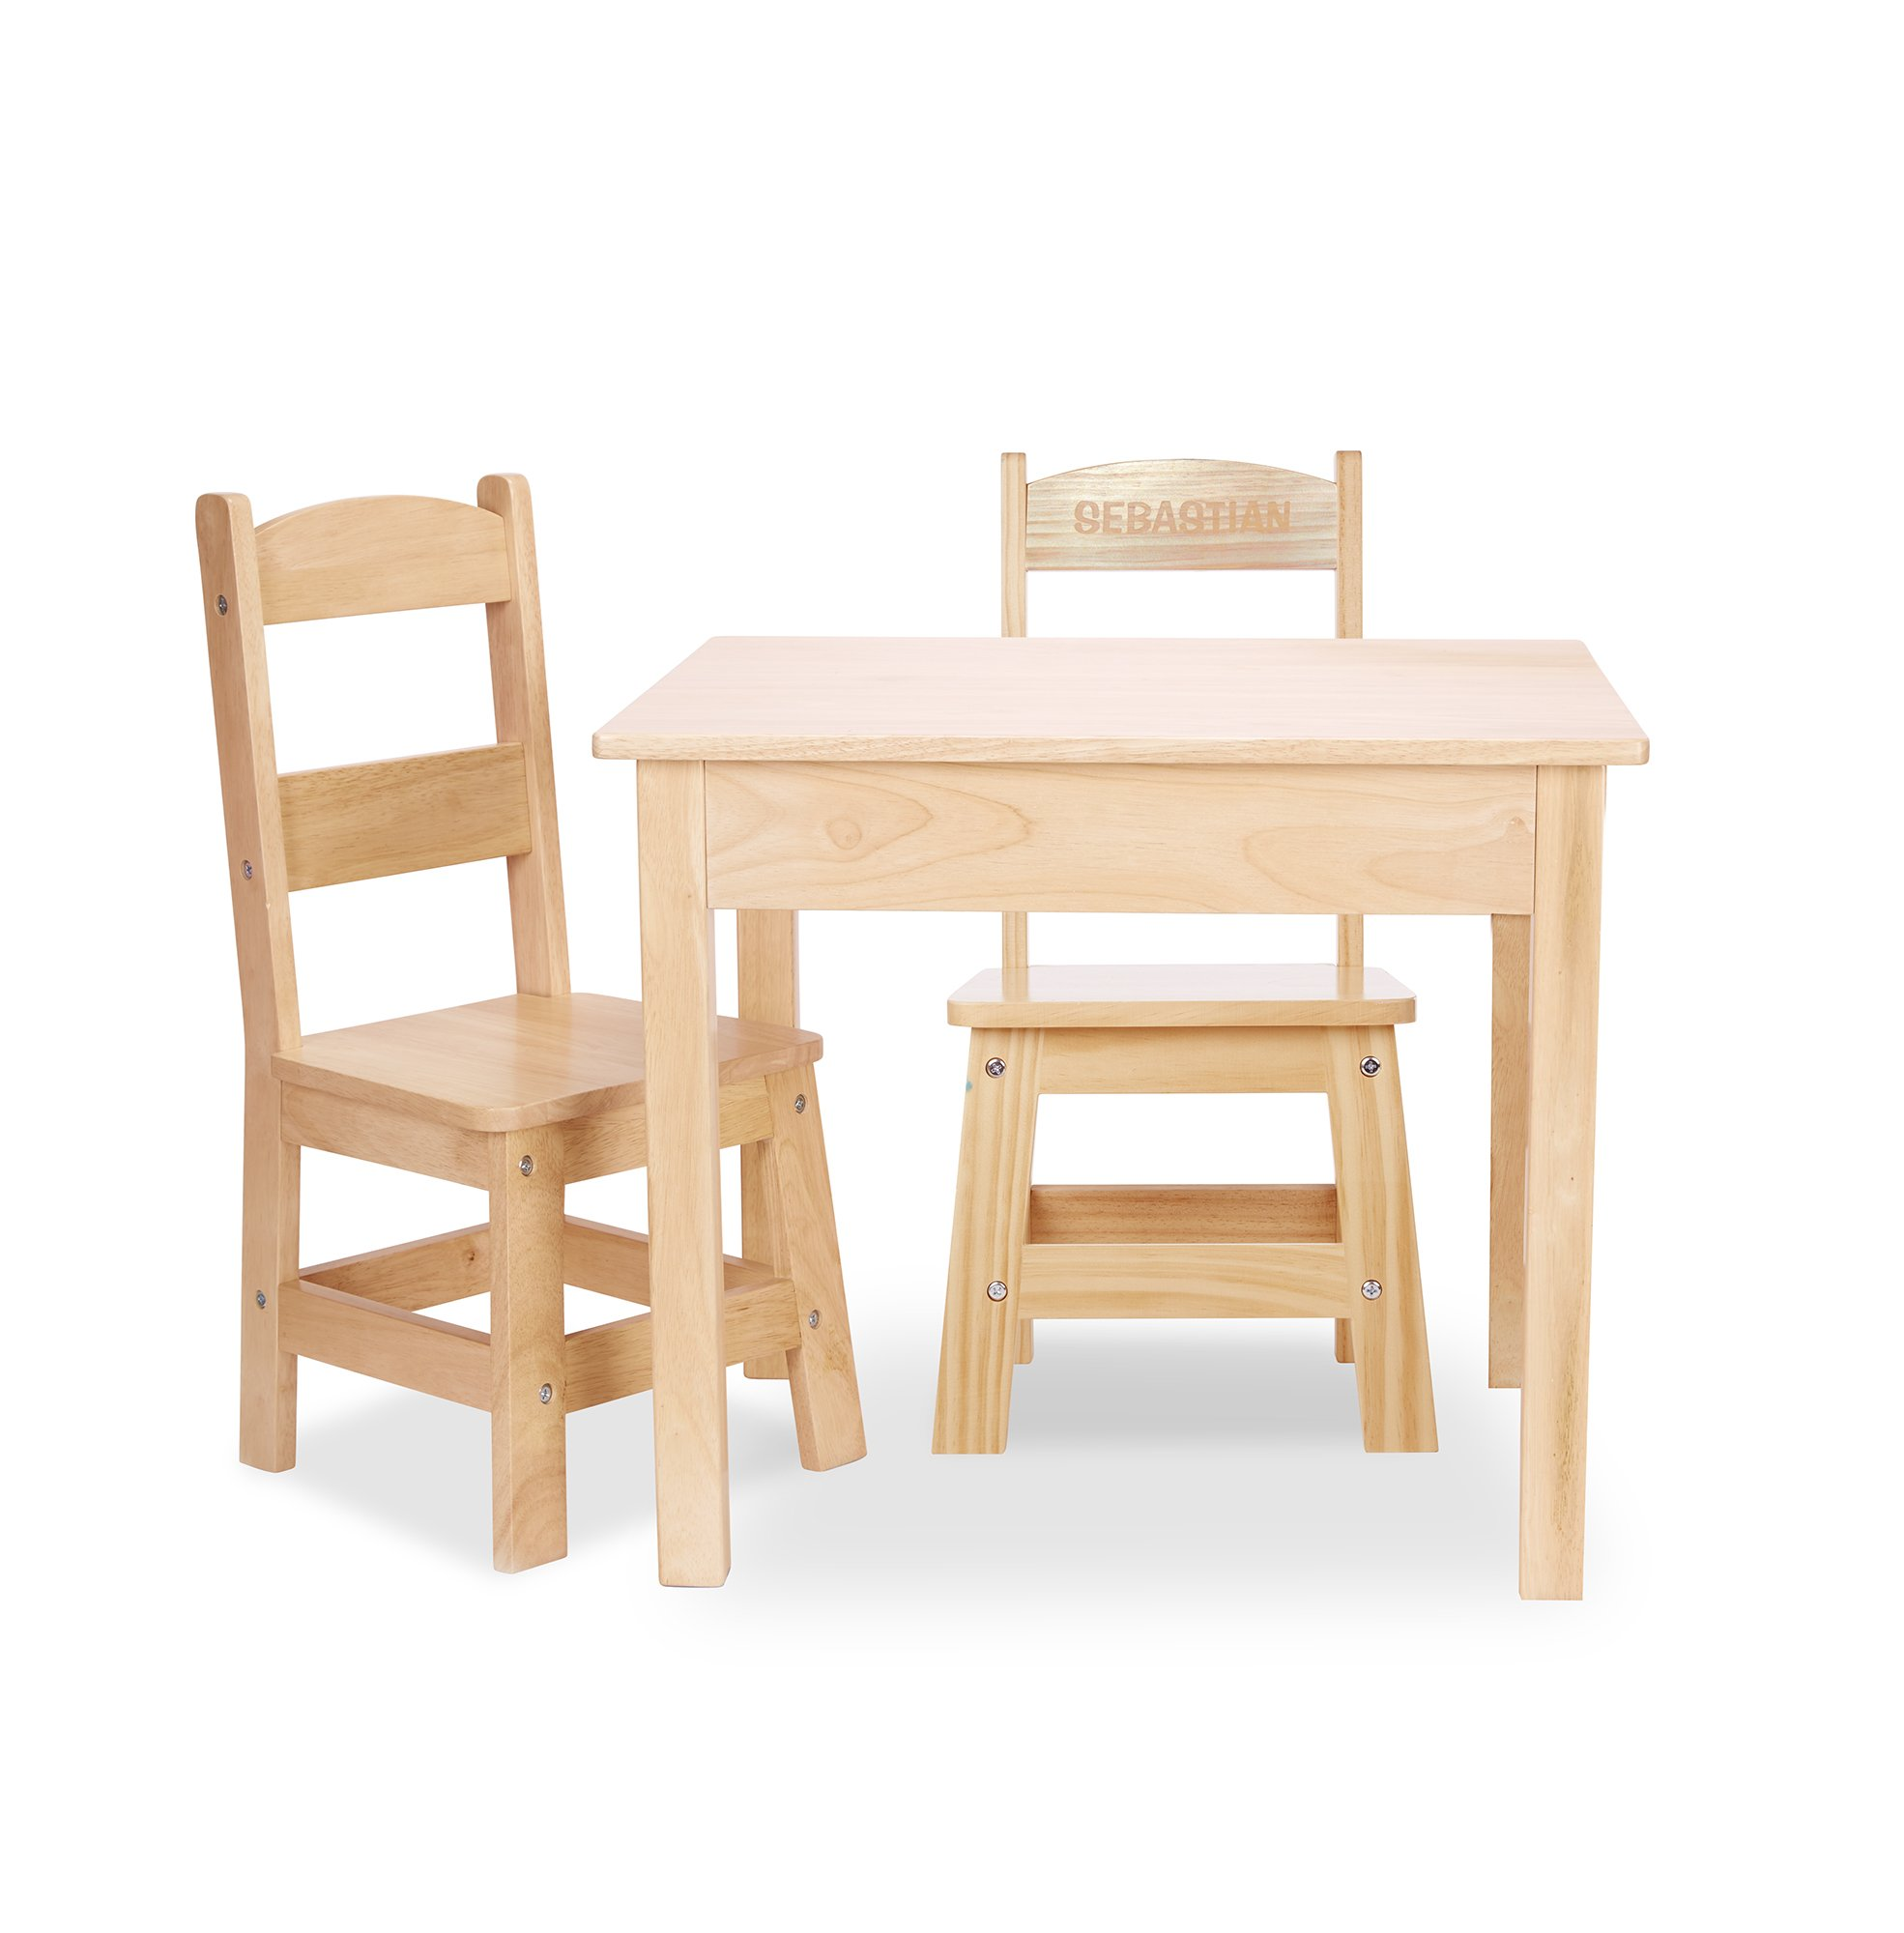 Melissa & Doug Personalized Solid Wood Table and 2 Chairs Set